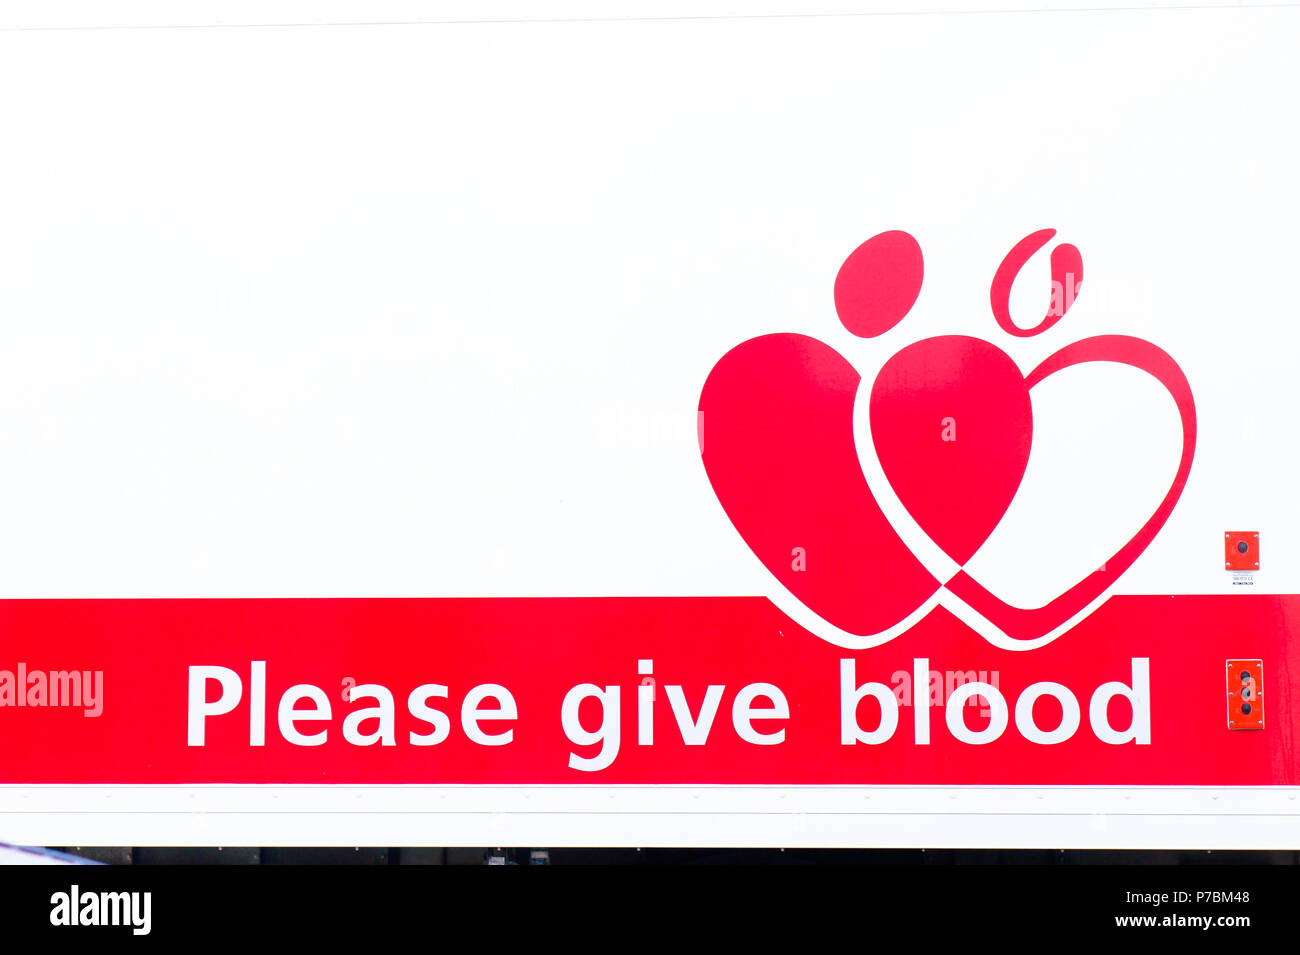 Bury St Edmunds, UK - May 15 2018:  A sign for a national blood donor appeal in the UK - Stock Image